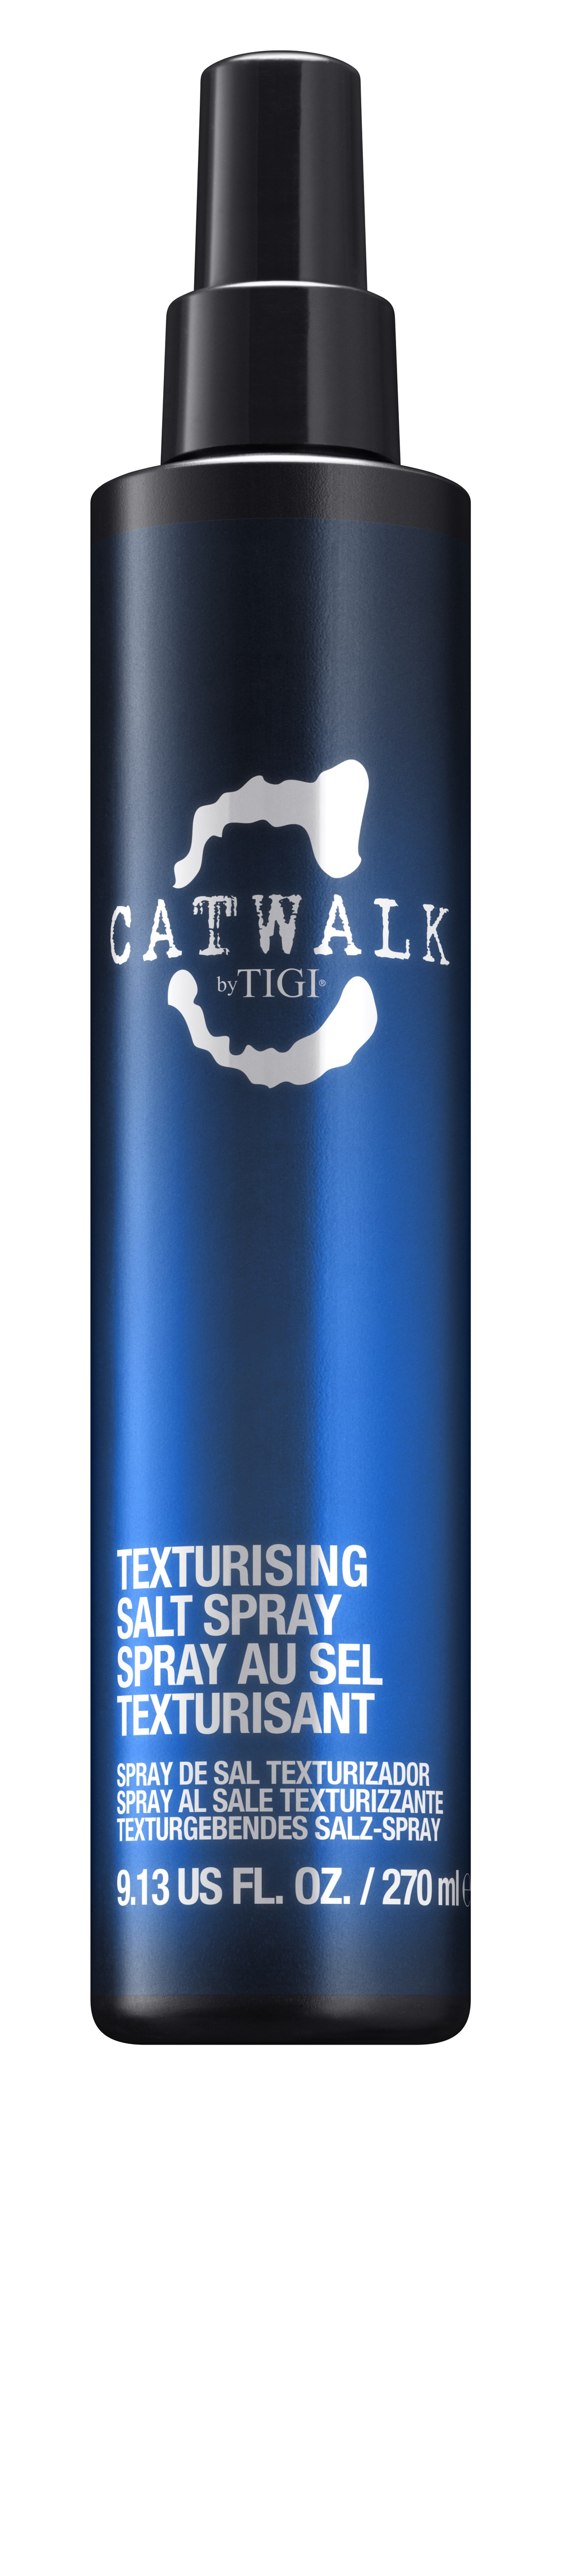 TIGI's new Texturizing Salt Spray